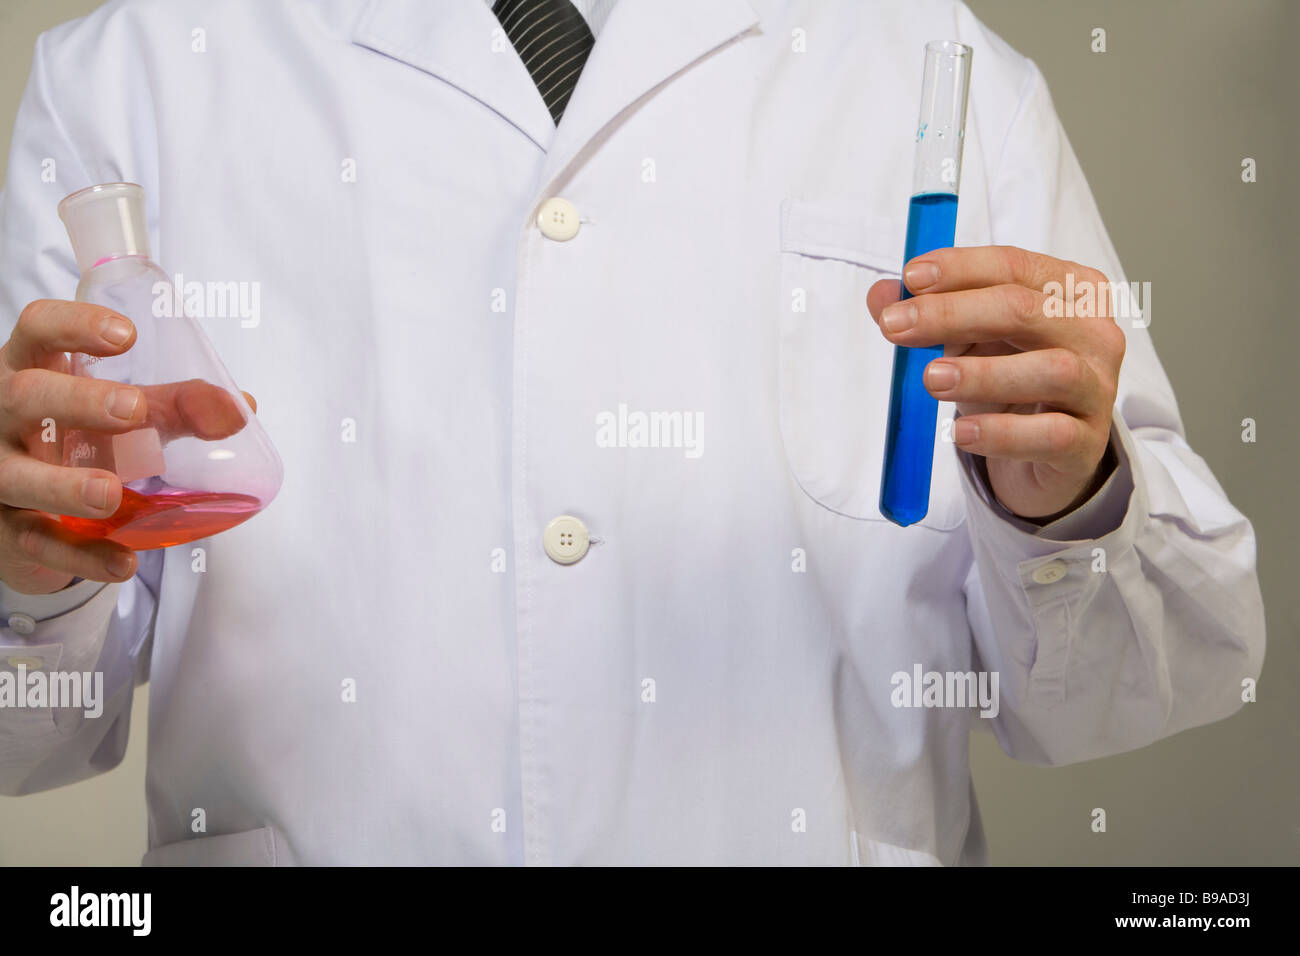 Close up of scientist holding beakers - Stock Image